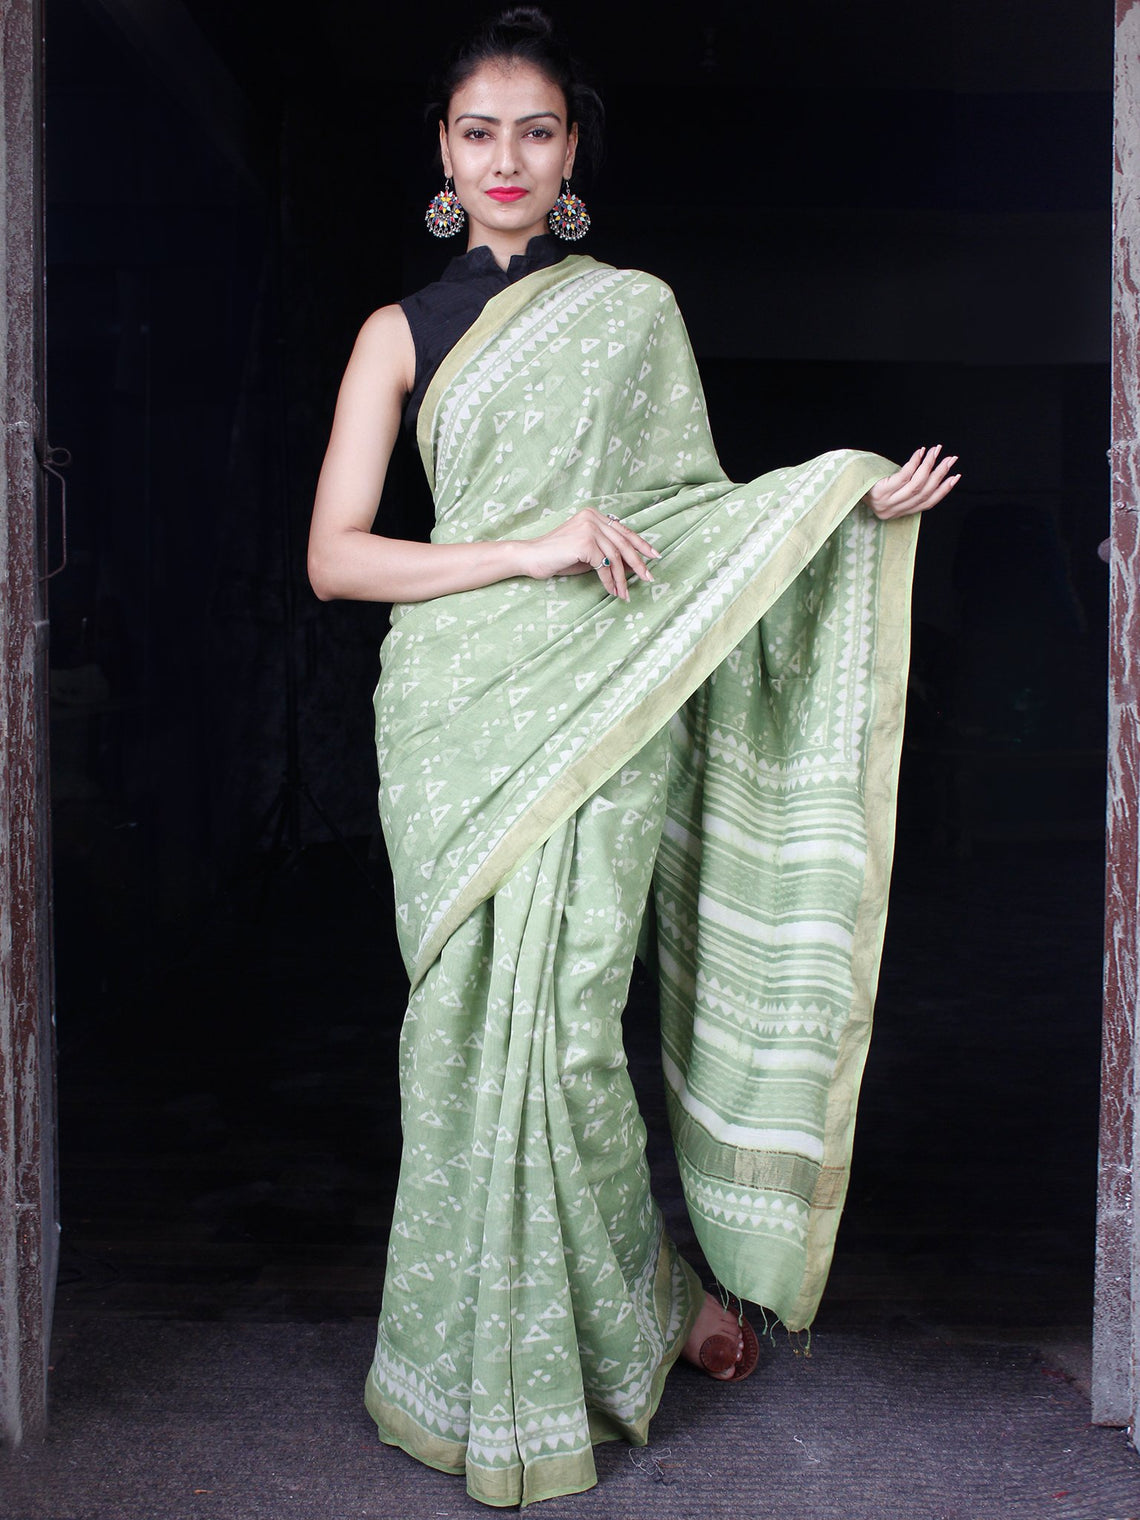 Pistachio Green White Hand Block Printed Handwoven Linen Saree With Zari Border - S031703592